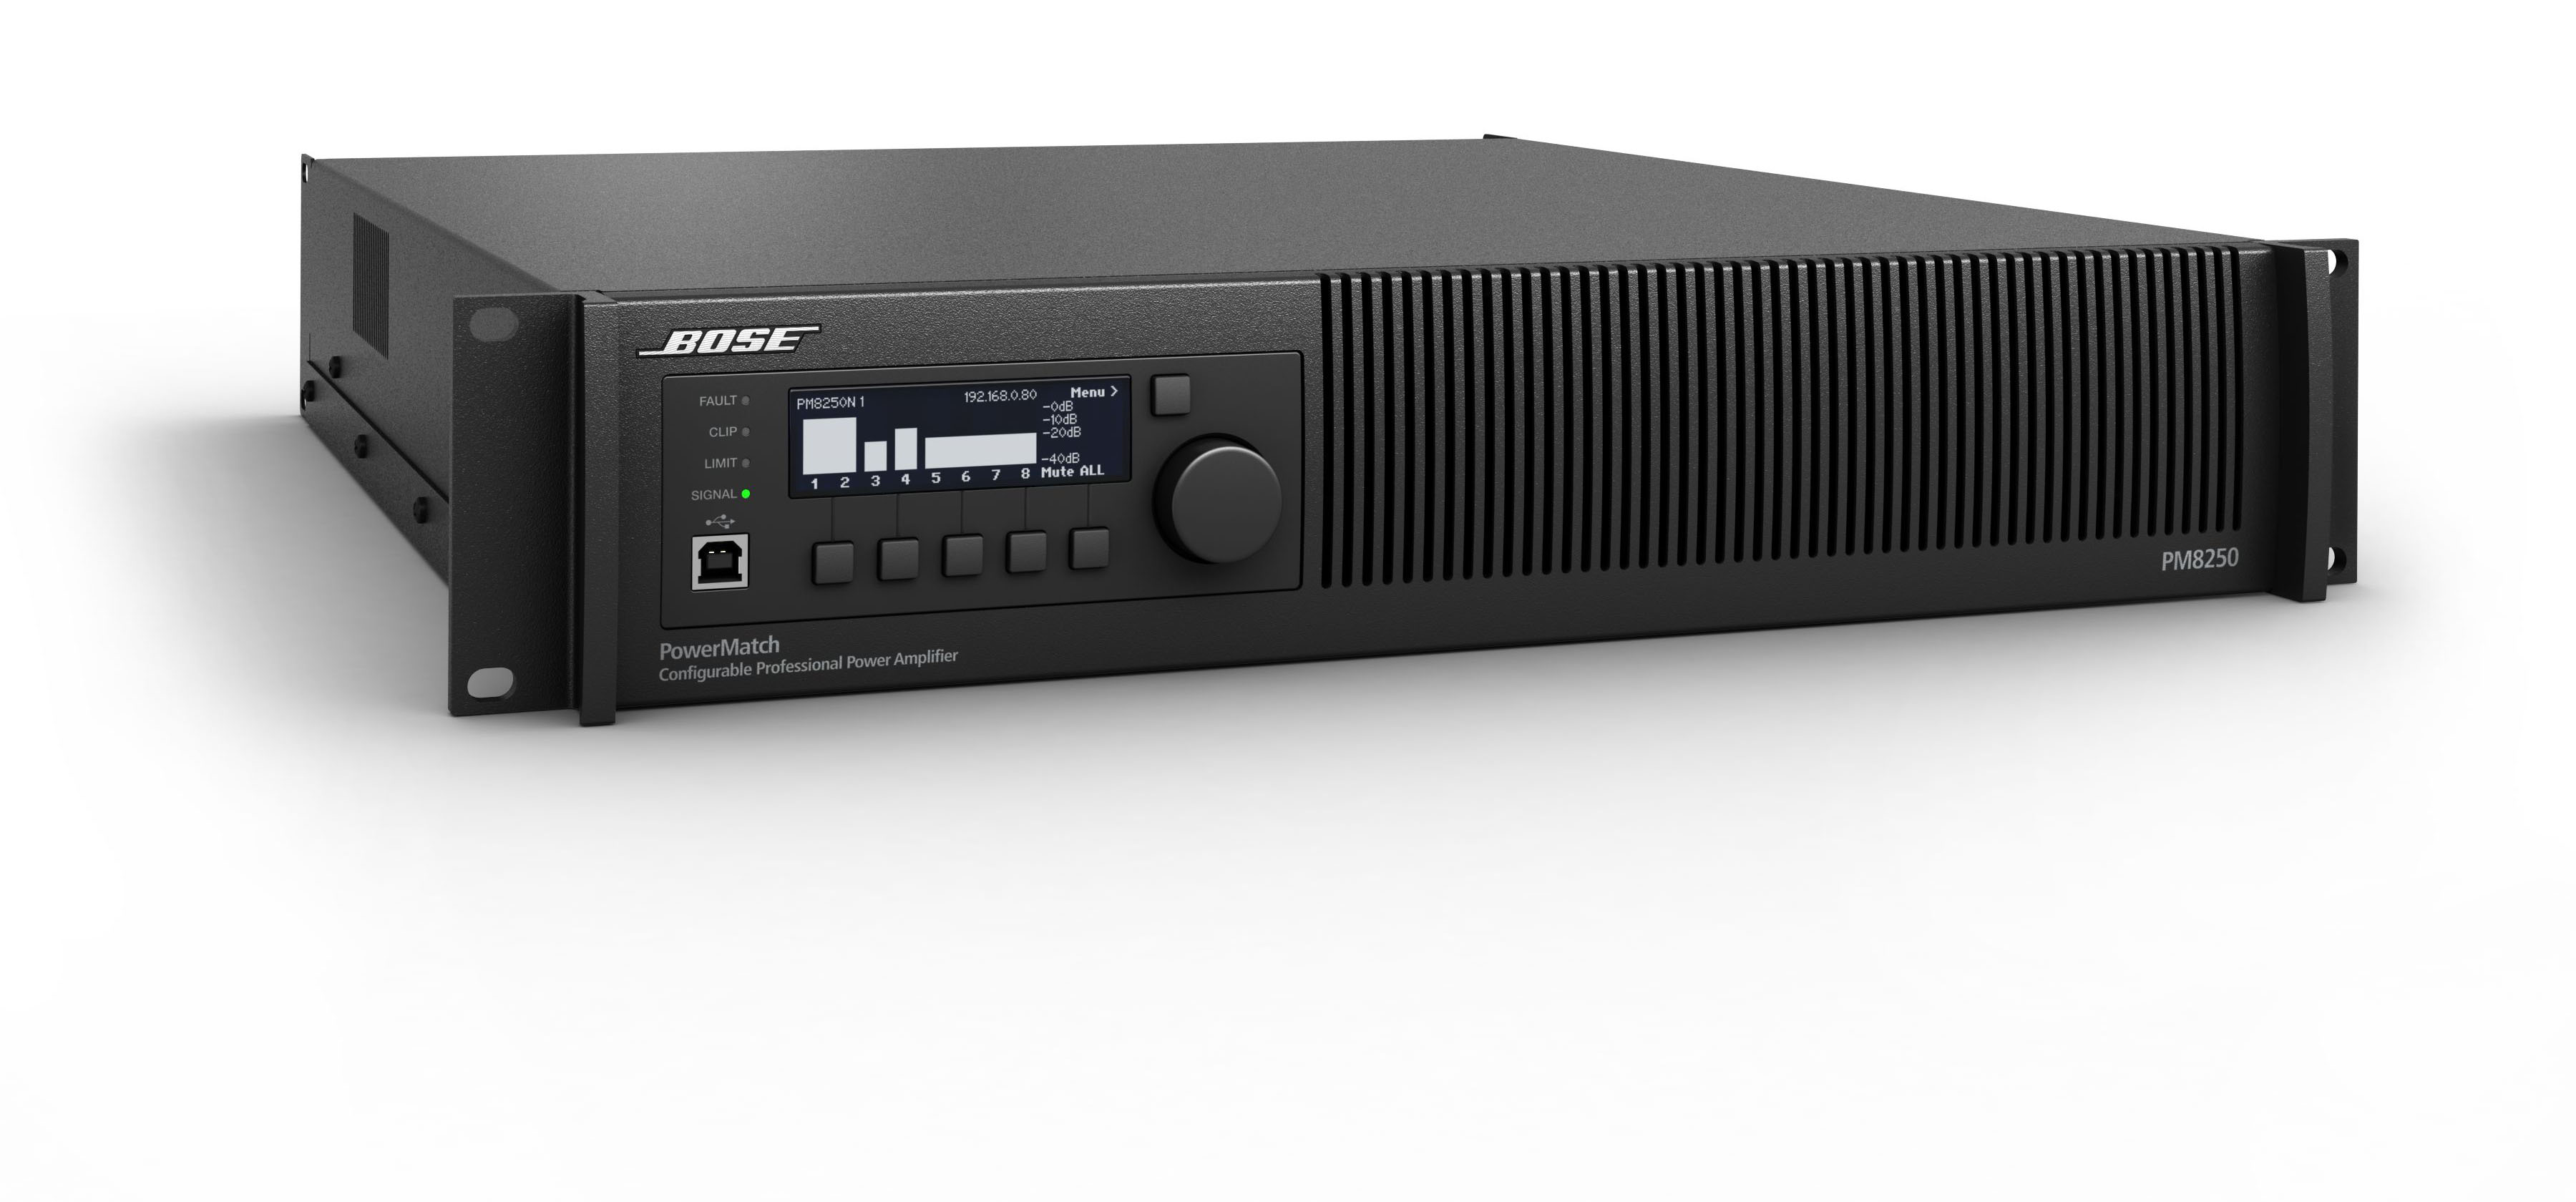 Présentation de l'amplificateur Bose PowerMatch PM8250N ControlSound Division professionnelle